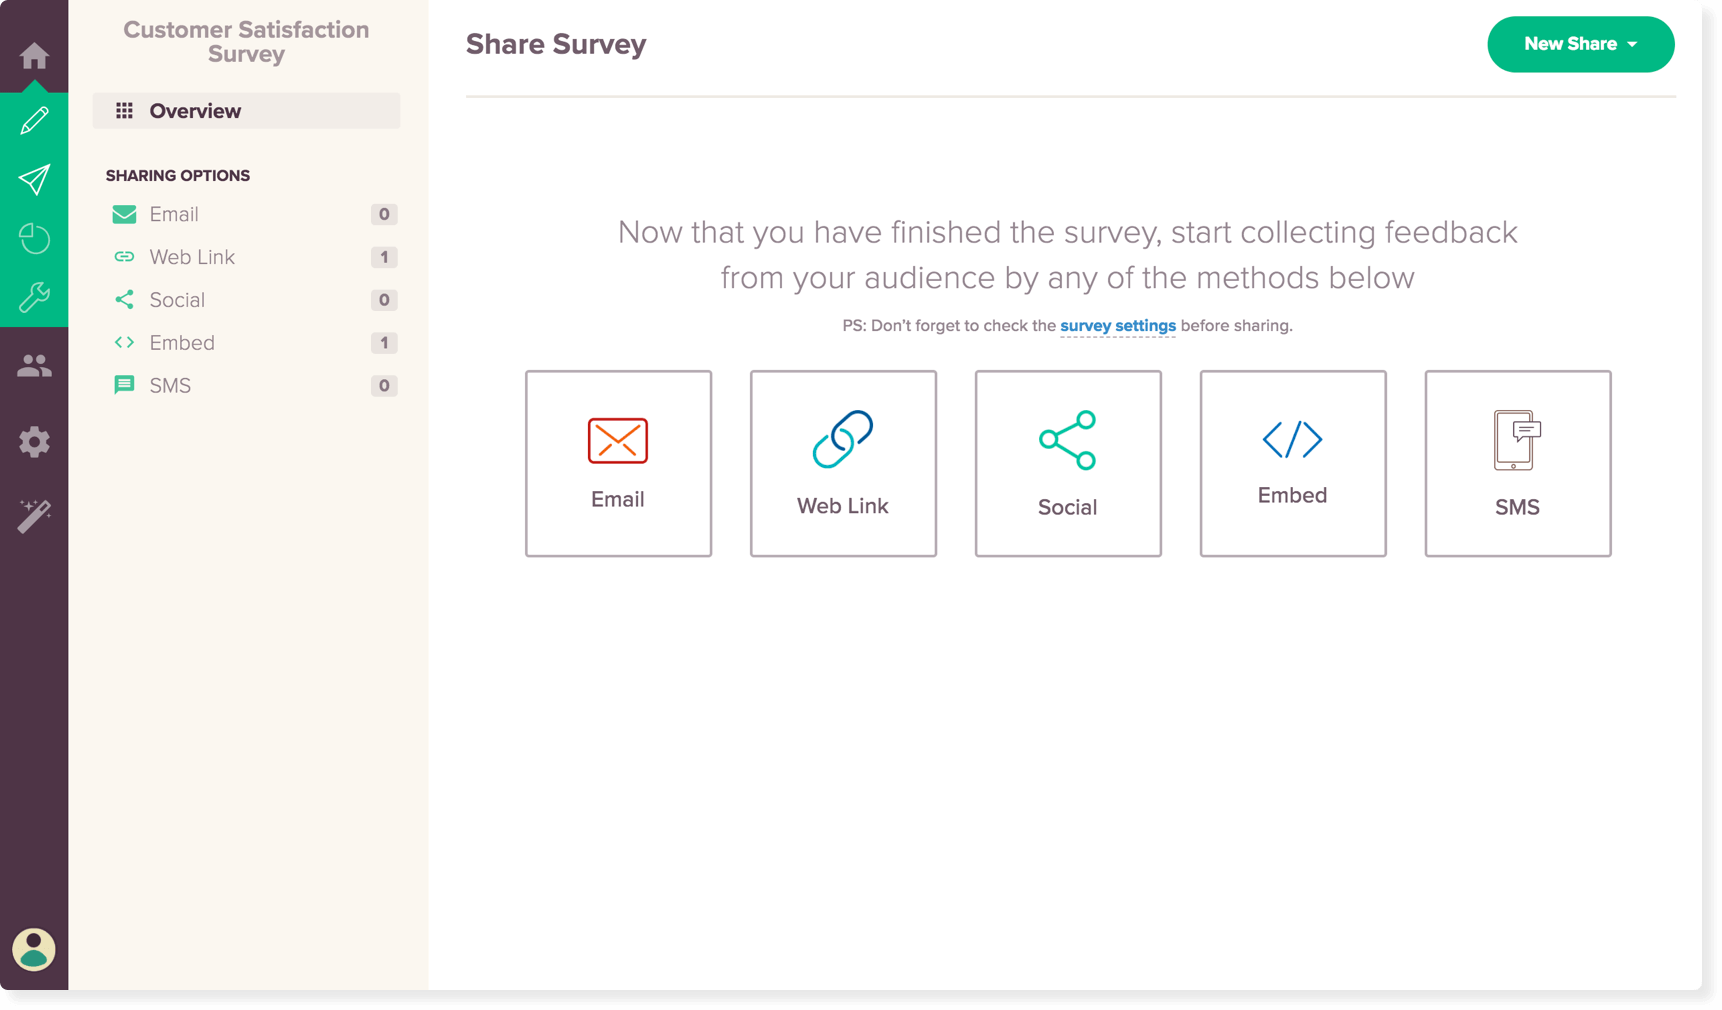 Share your surveys across various channels for maximum reach.